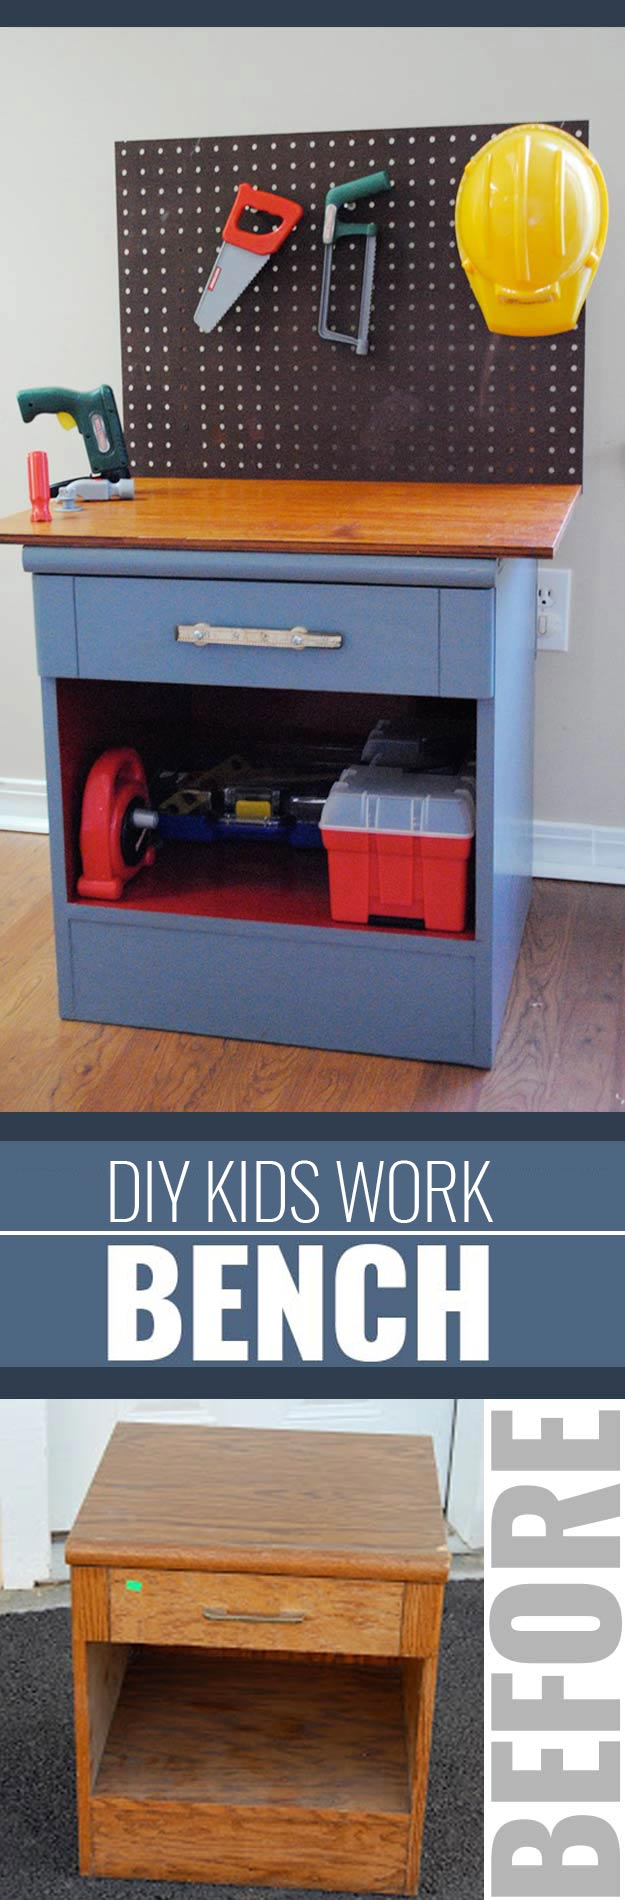 DIY Christmas Gifts for Kids - Homemade Christmas Presents for Children and Christmas Crafts for Kids   Toys, Dress Up Clothes, Dolls and Fun Games   Step by Step tutorials and instructions for cool gifts to make for boys and girls   Kiddie Workbench